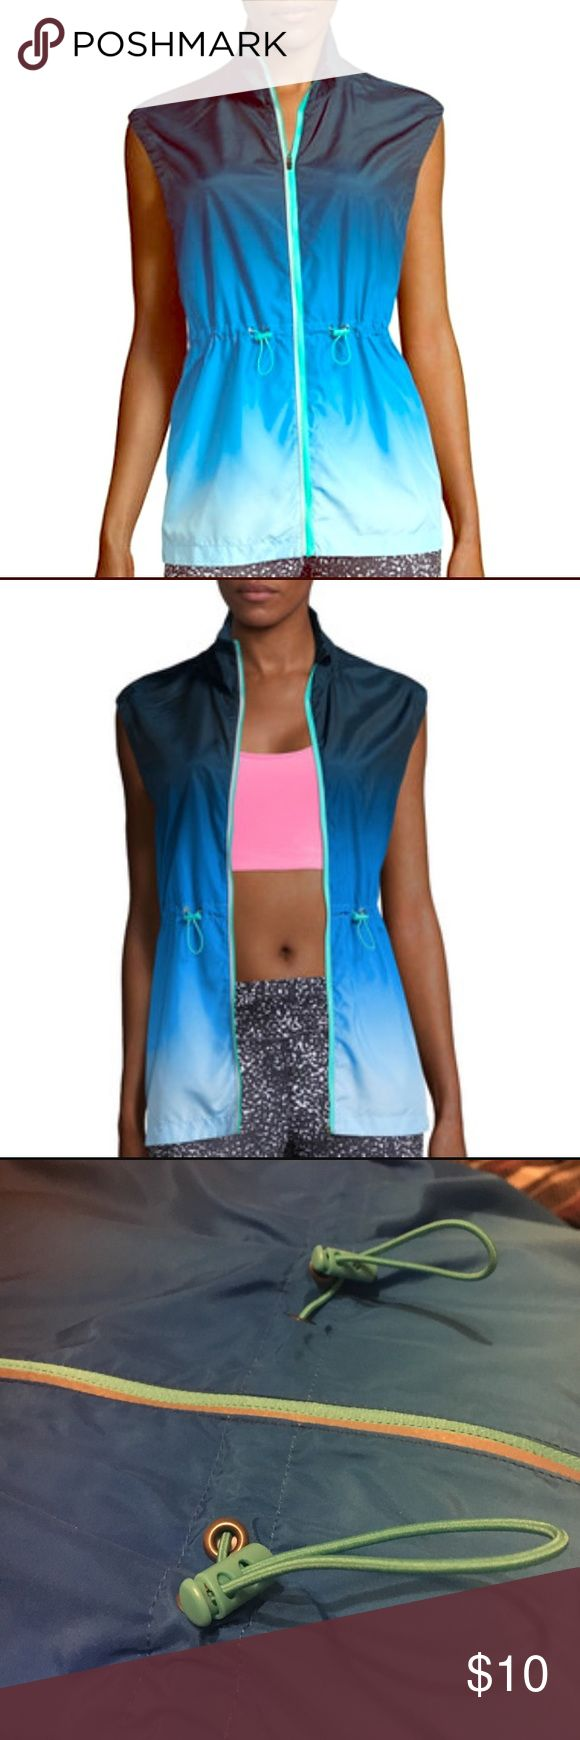 Workout vest top A super cute faded blue vest. Can be worn unzipped or zipped. Intended for workout purposes. Never worn before. xersion Jackets & Coats Vests